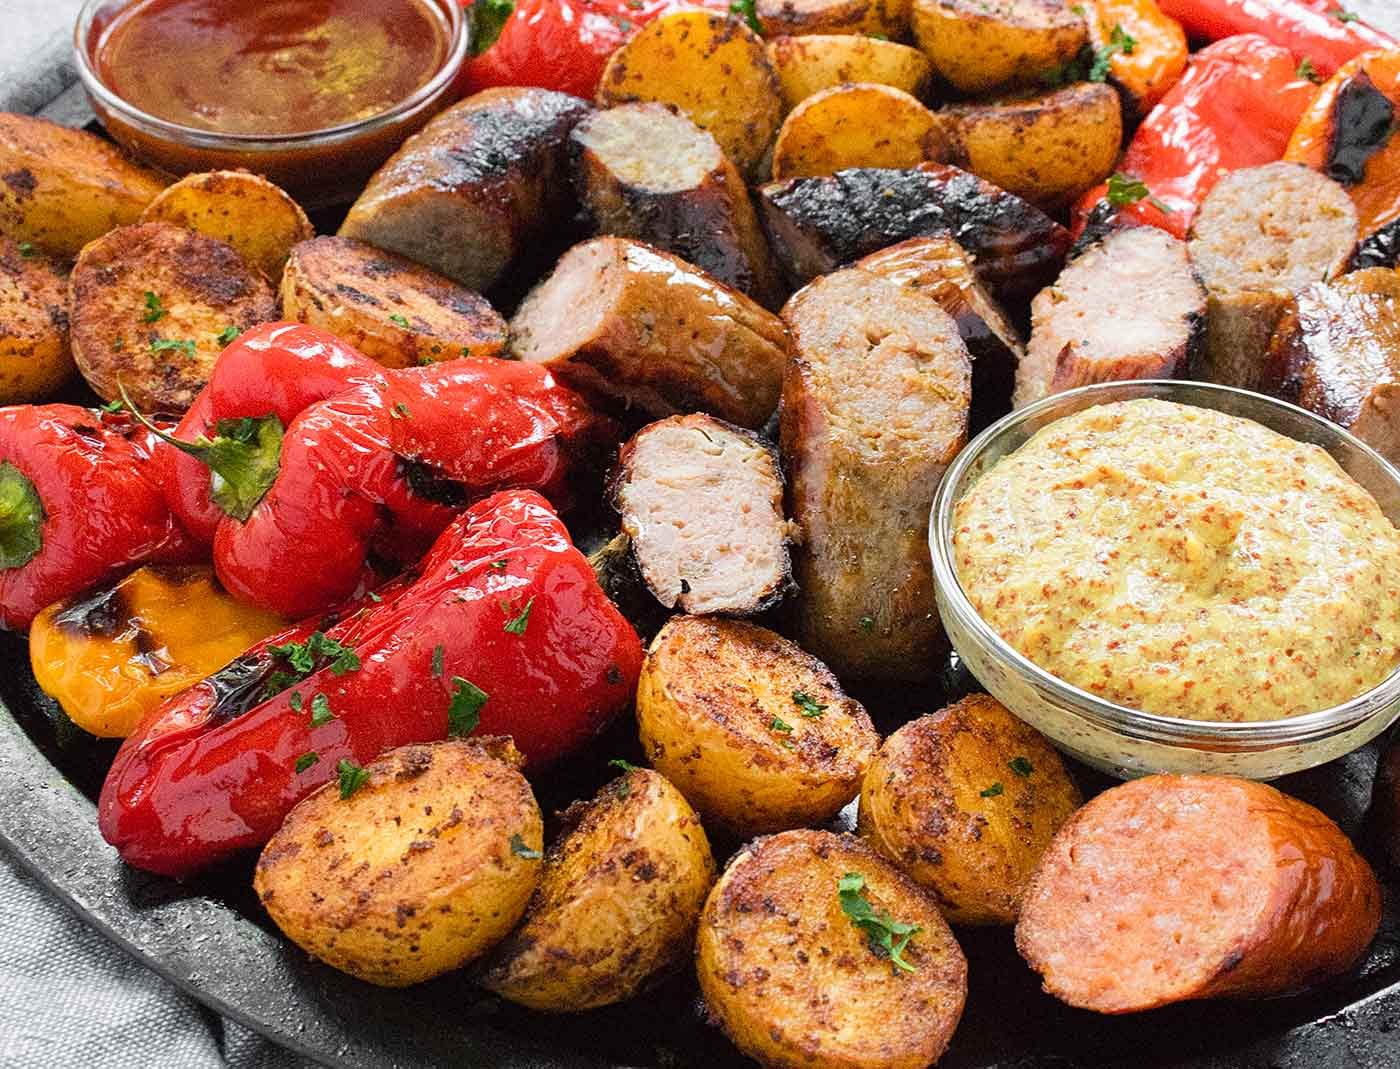 Grilled sausages, peppers, and potatoes on a platter with dipping sauces